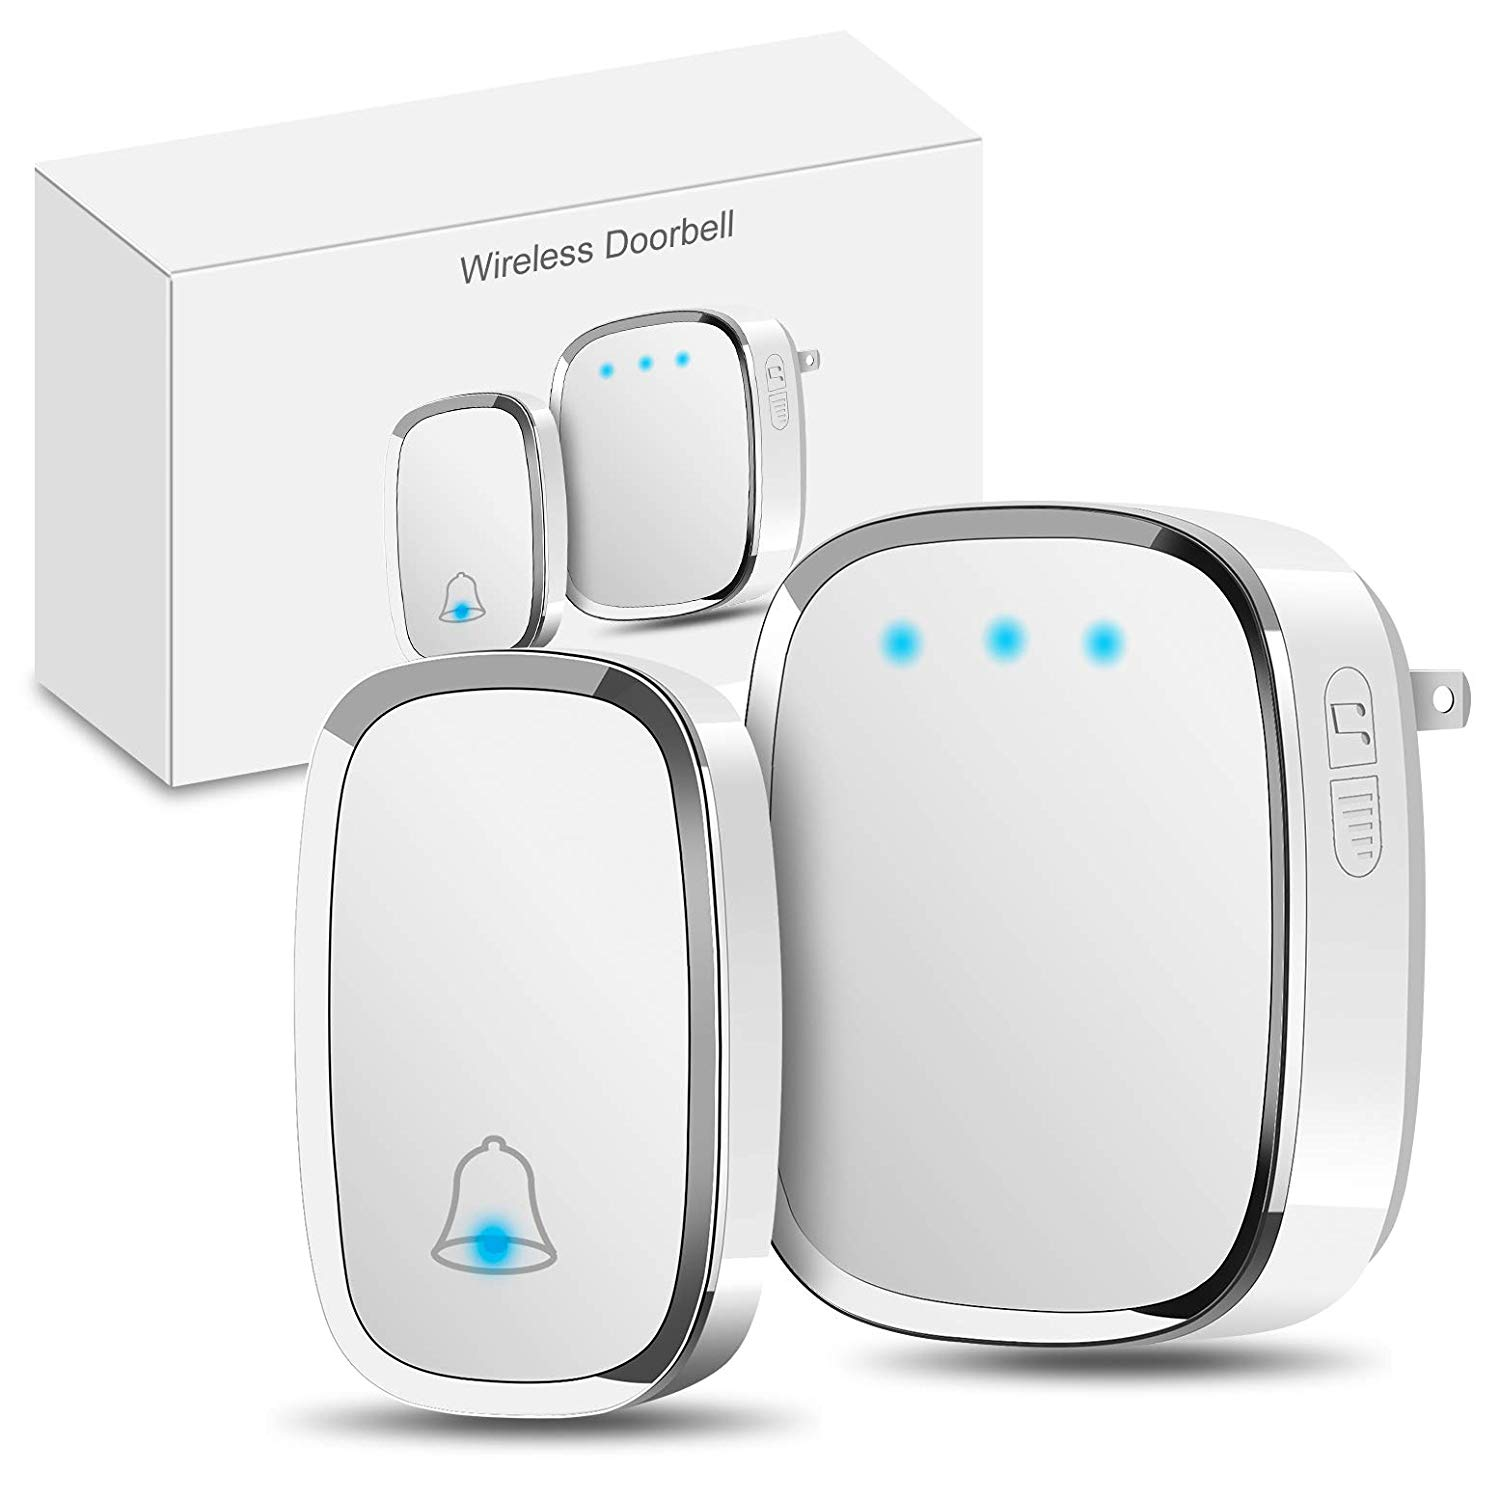 Govee Wireless Doorbell Review